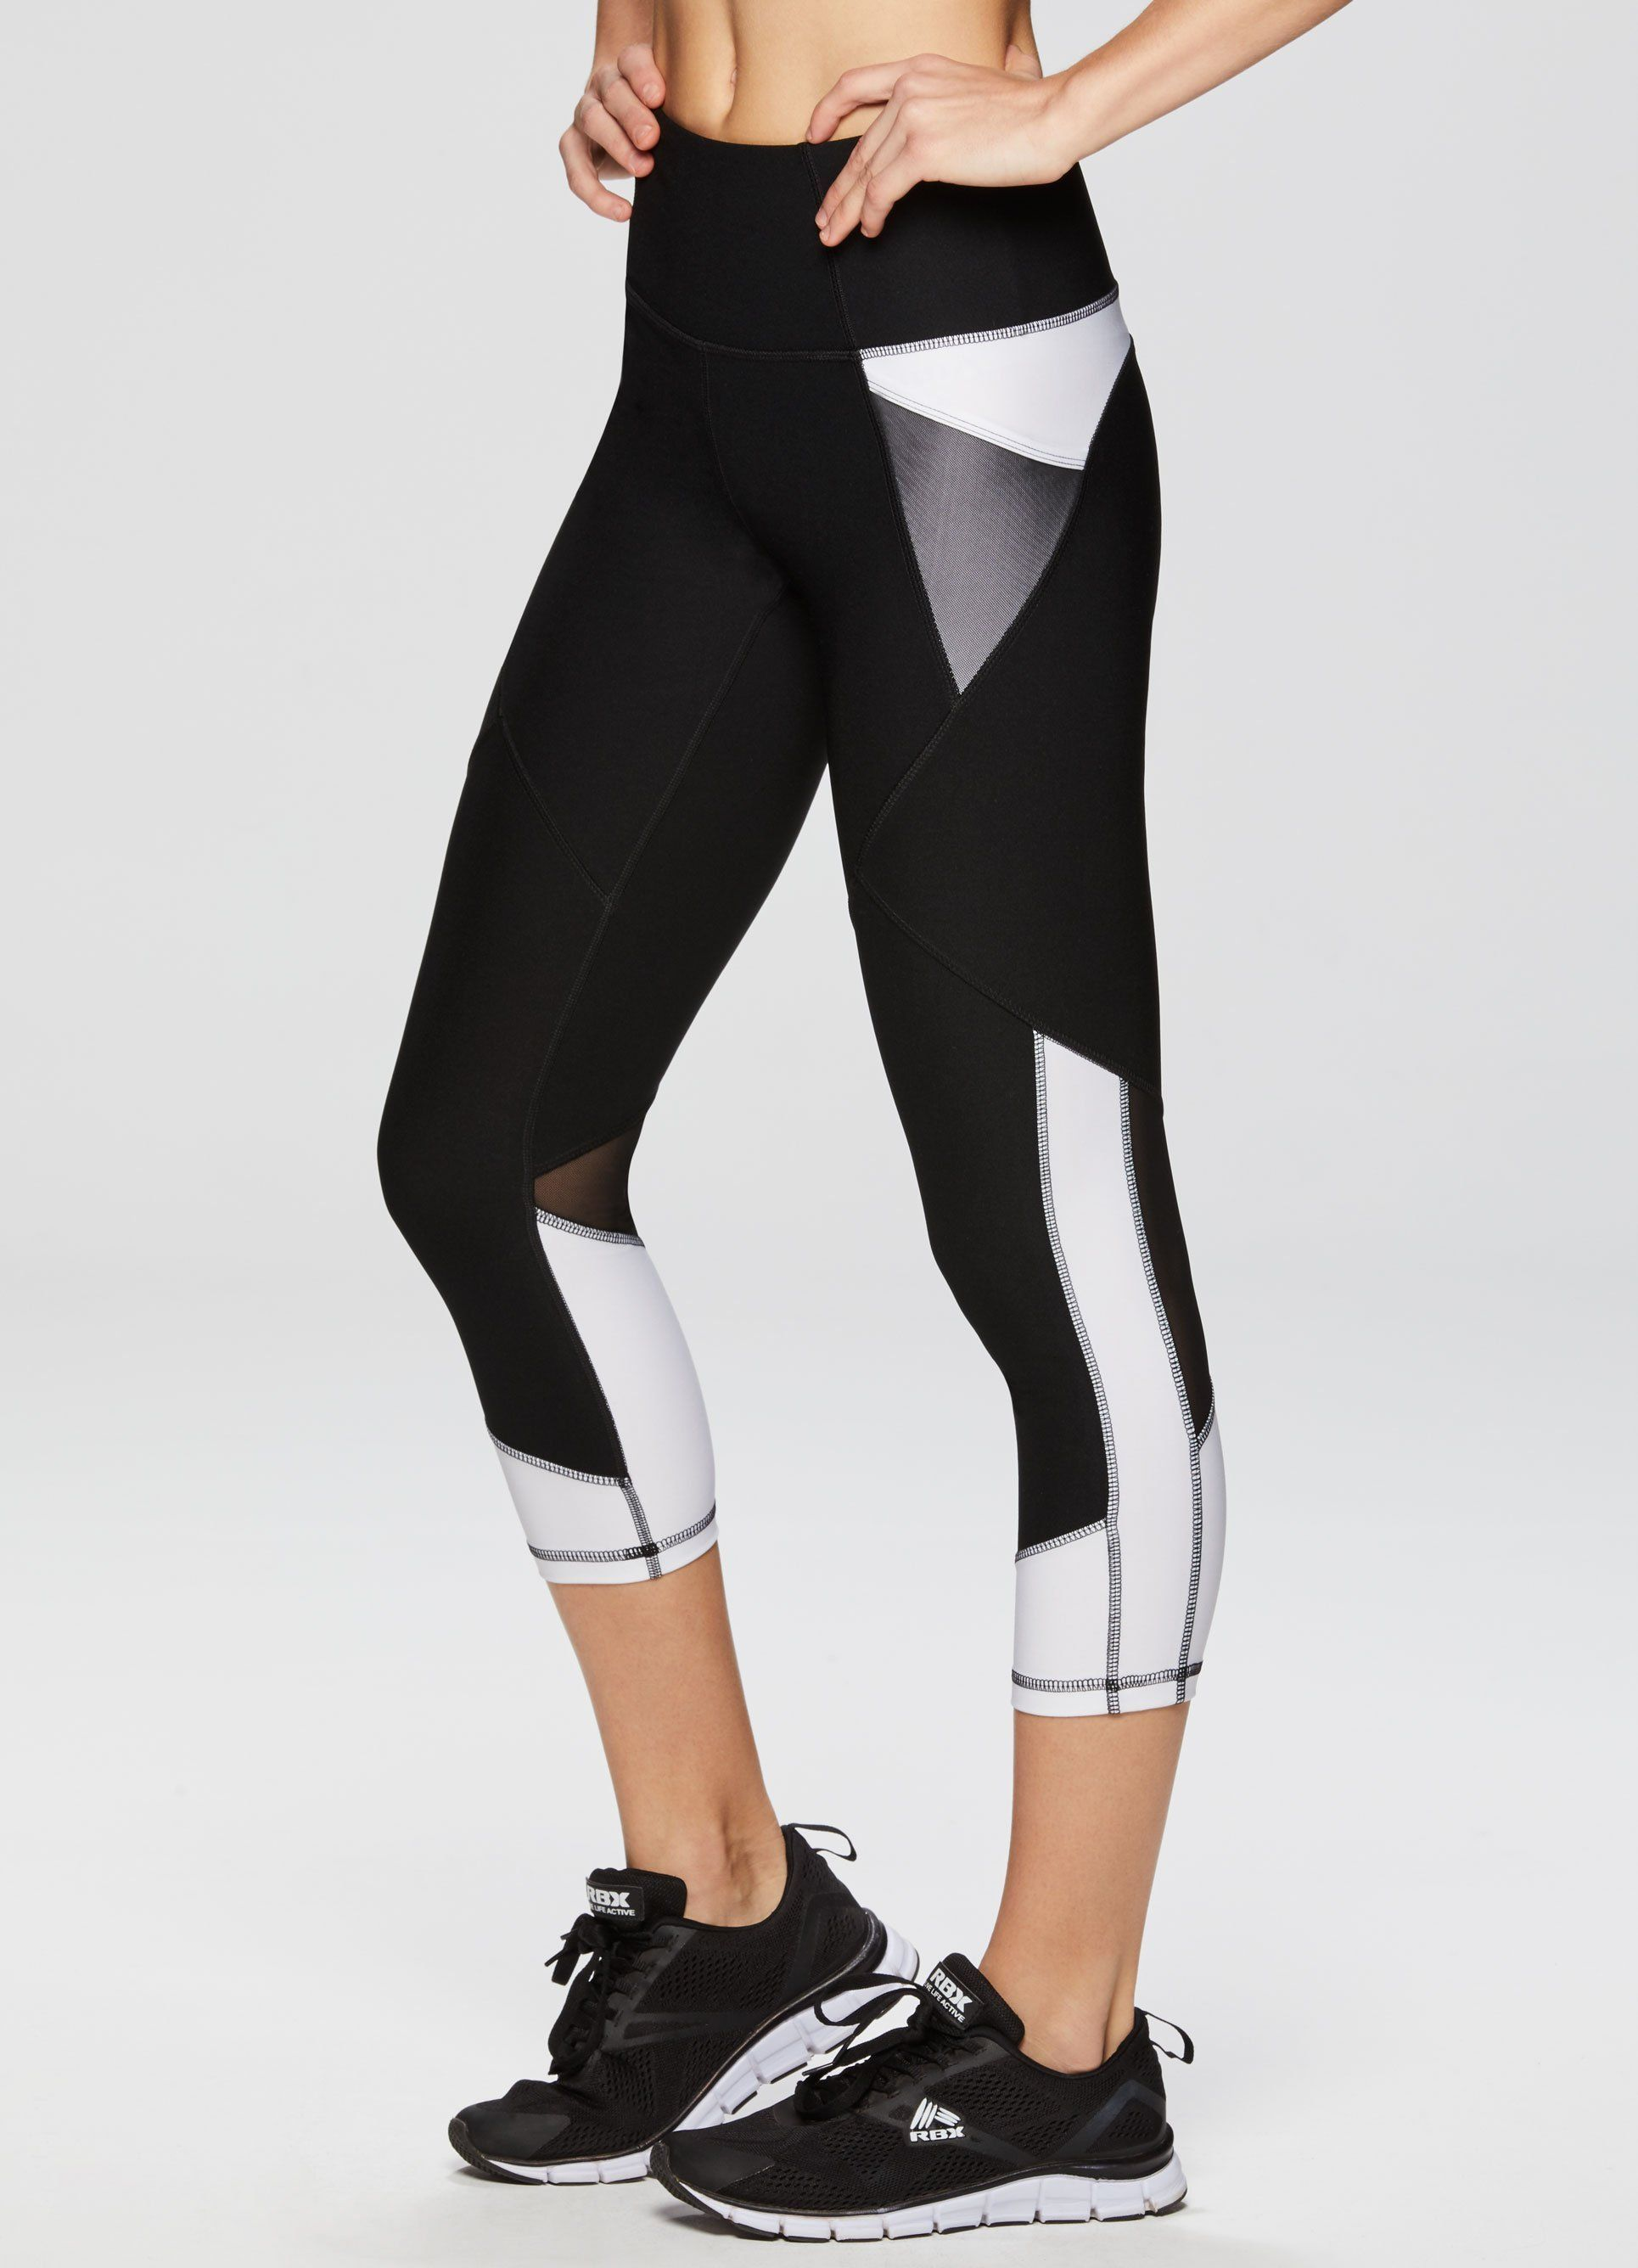 013a83be5a1a7 Step up your fitness routine in this mesh tech pocket color blocked capri  legging. Mesh